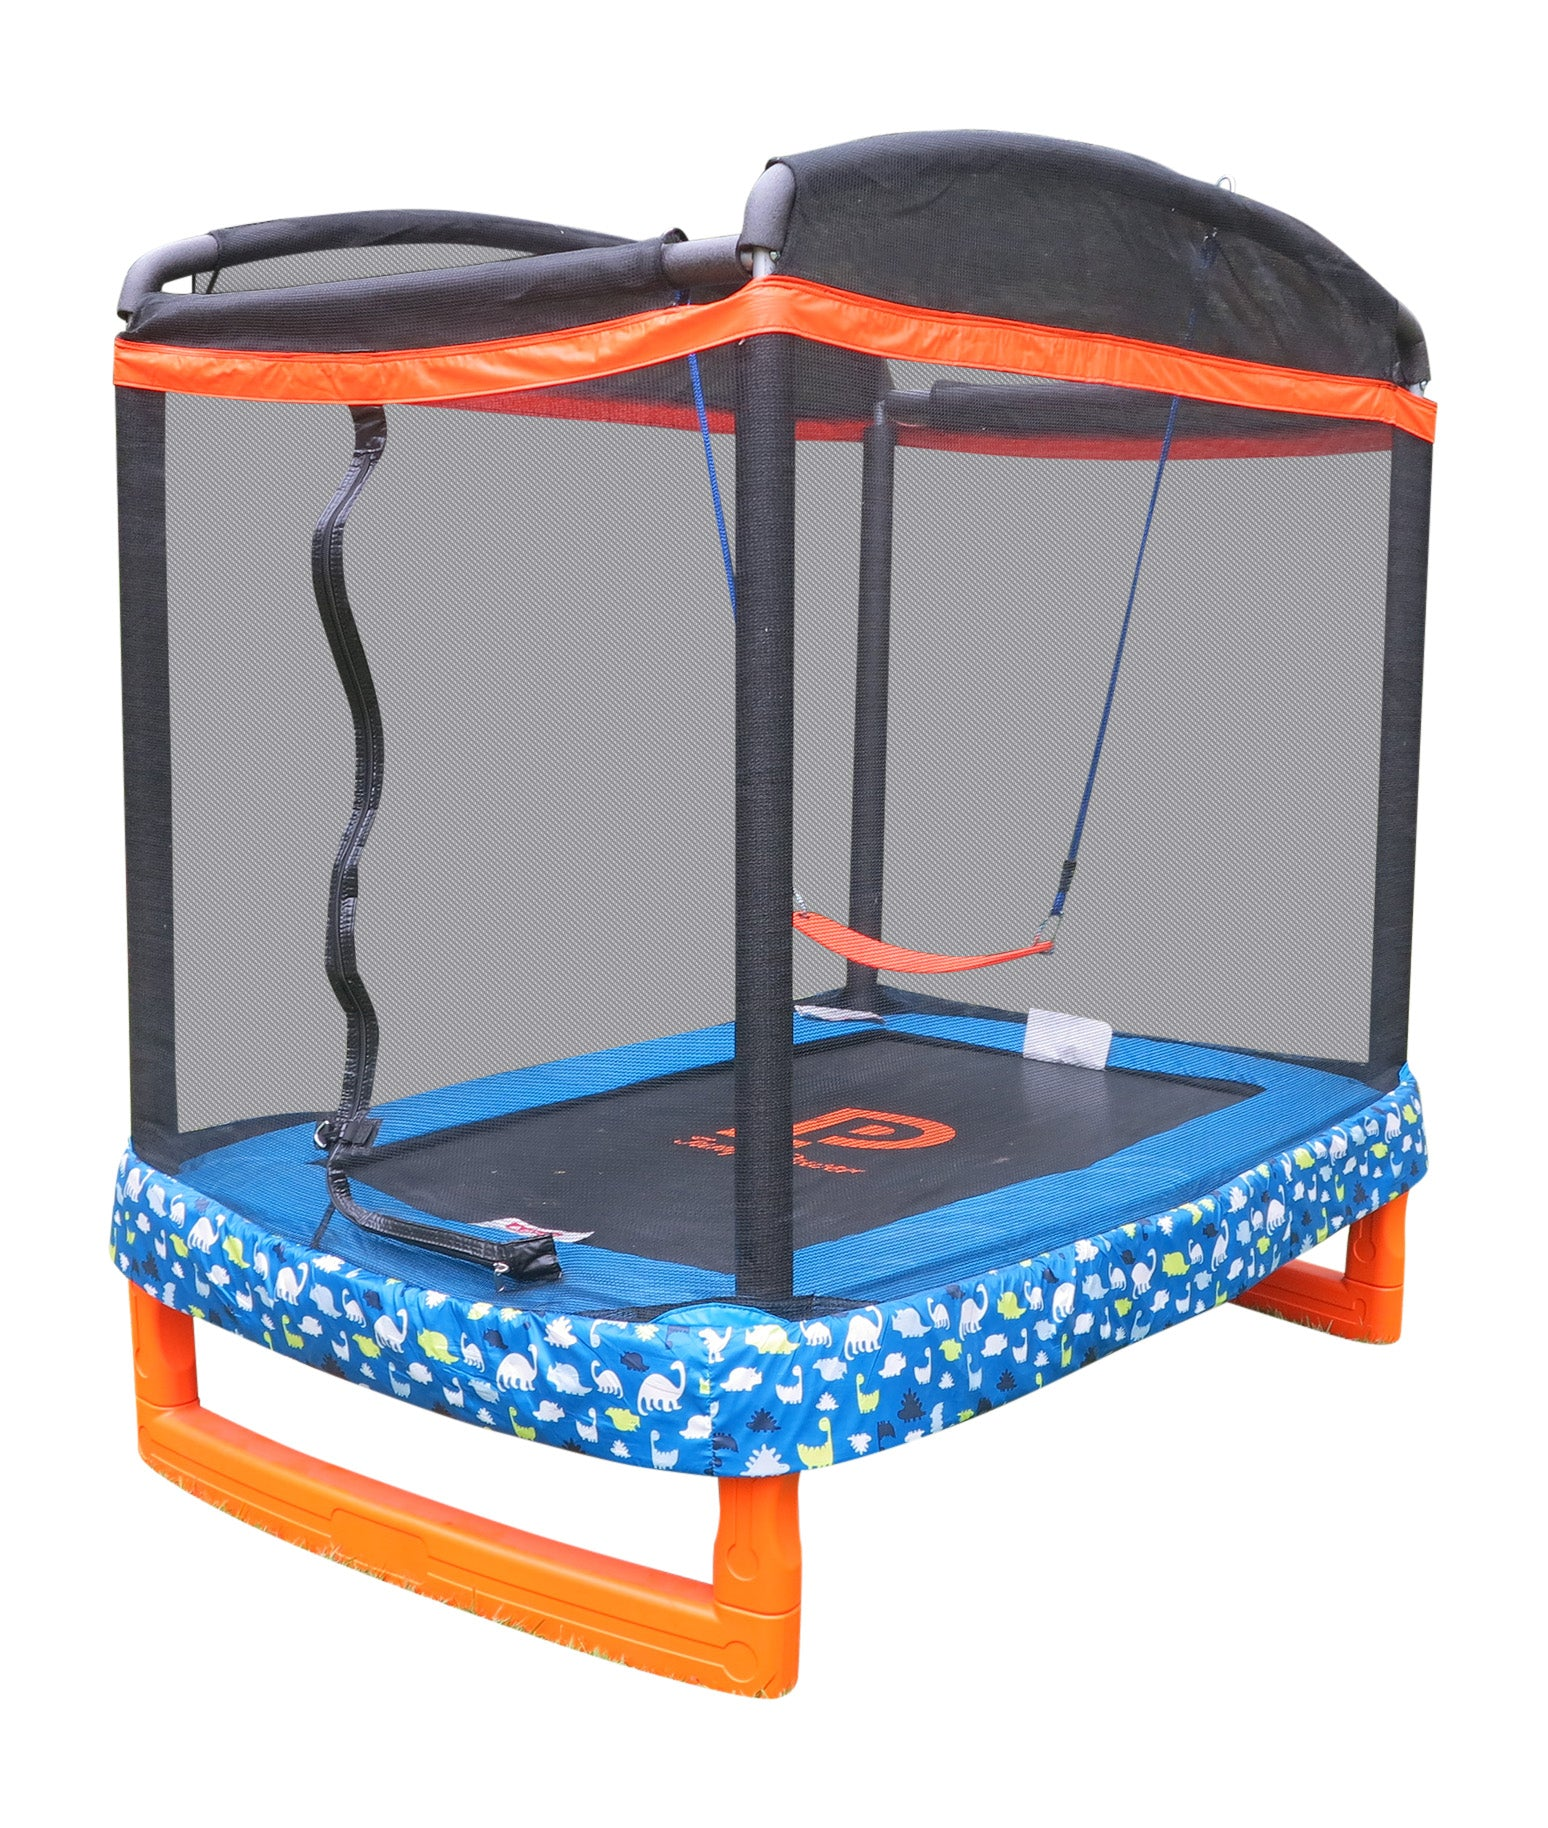 "72"" x 50"" Indoor/Outdoor Trampoline Combo with Swing ""ASTM Safety Approved"""